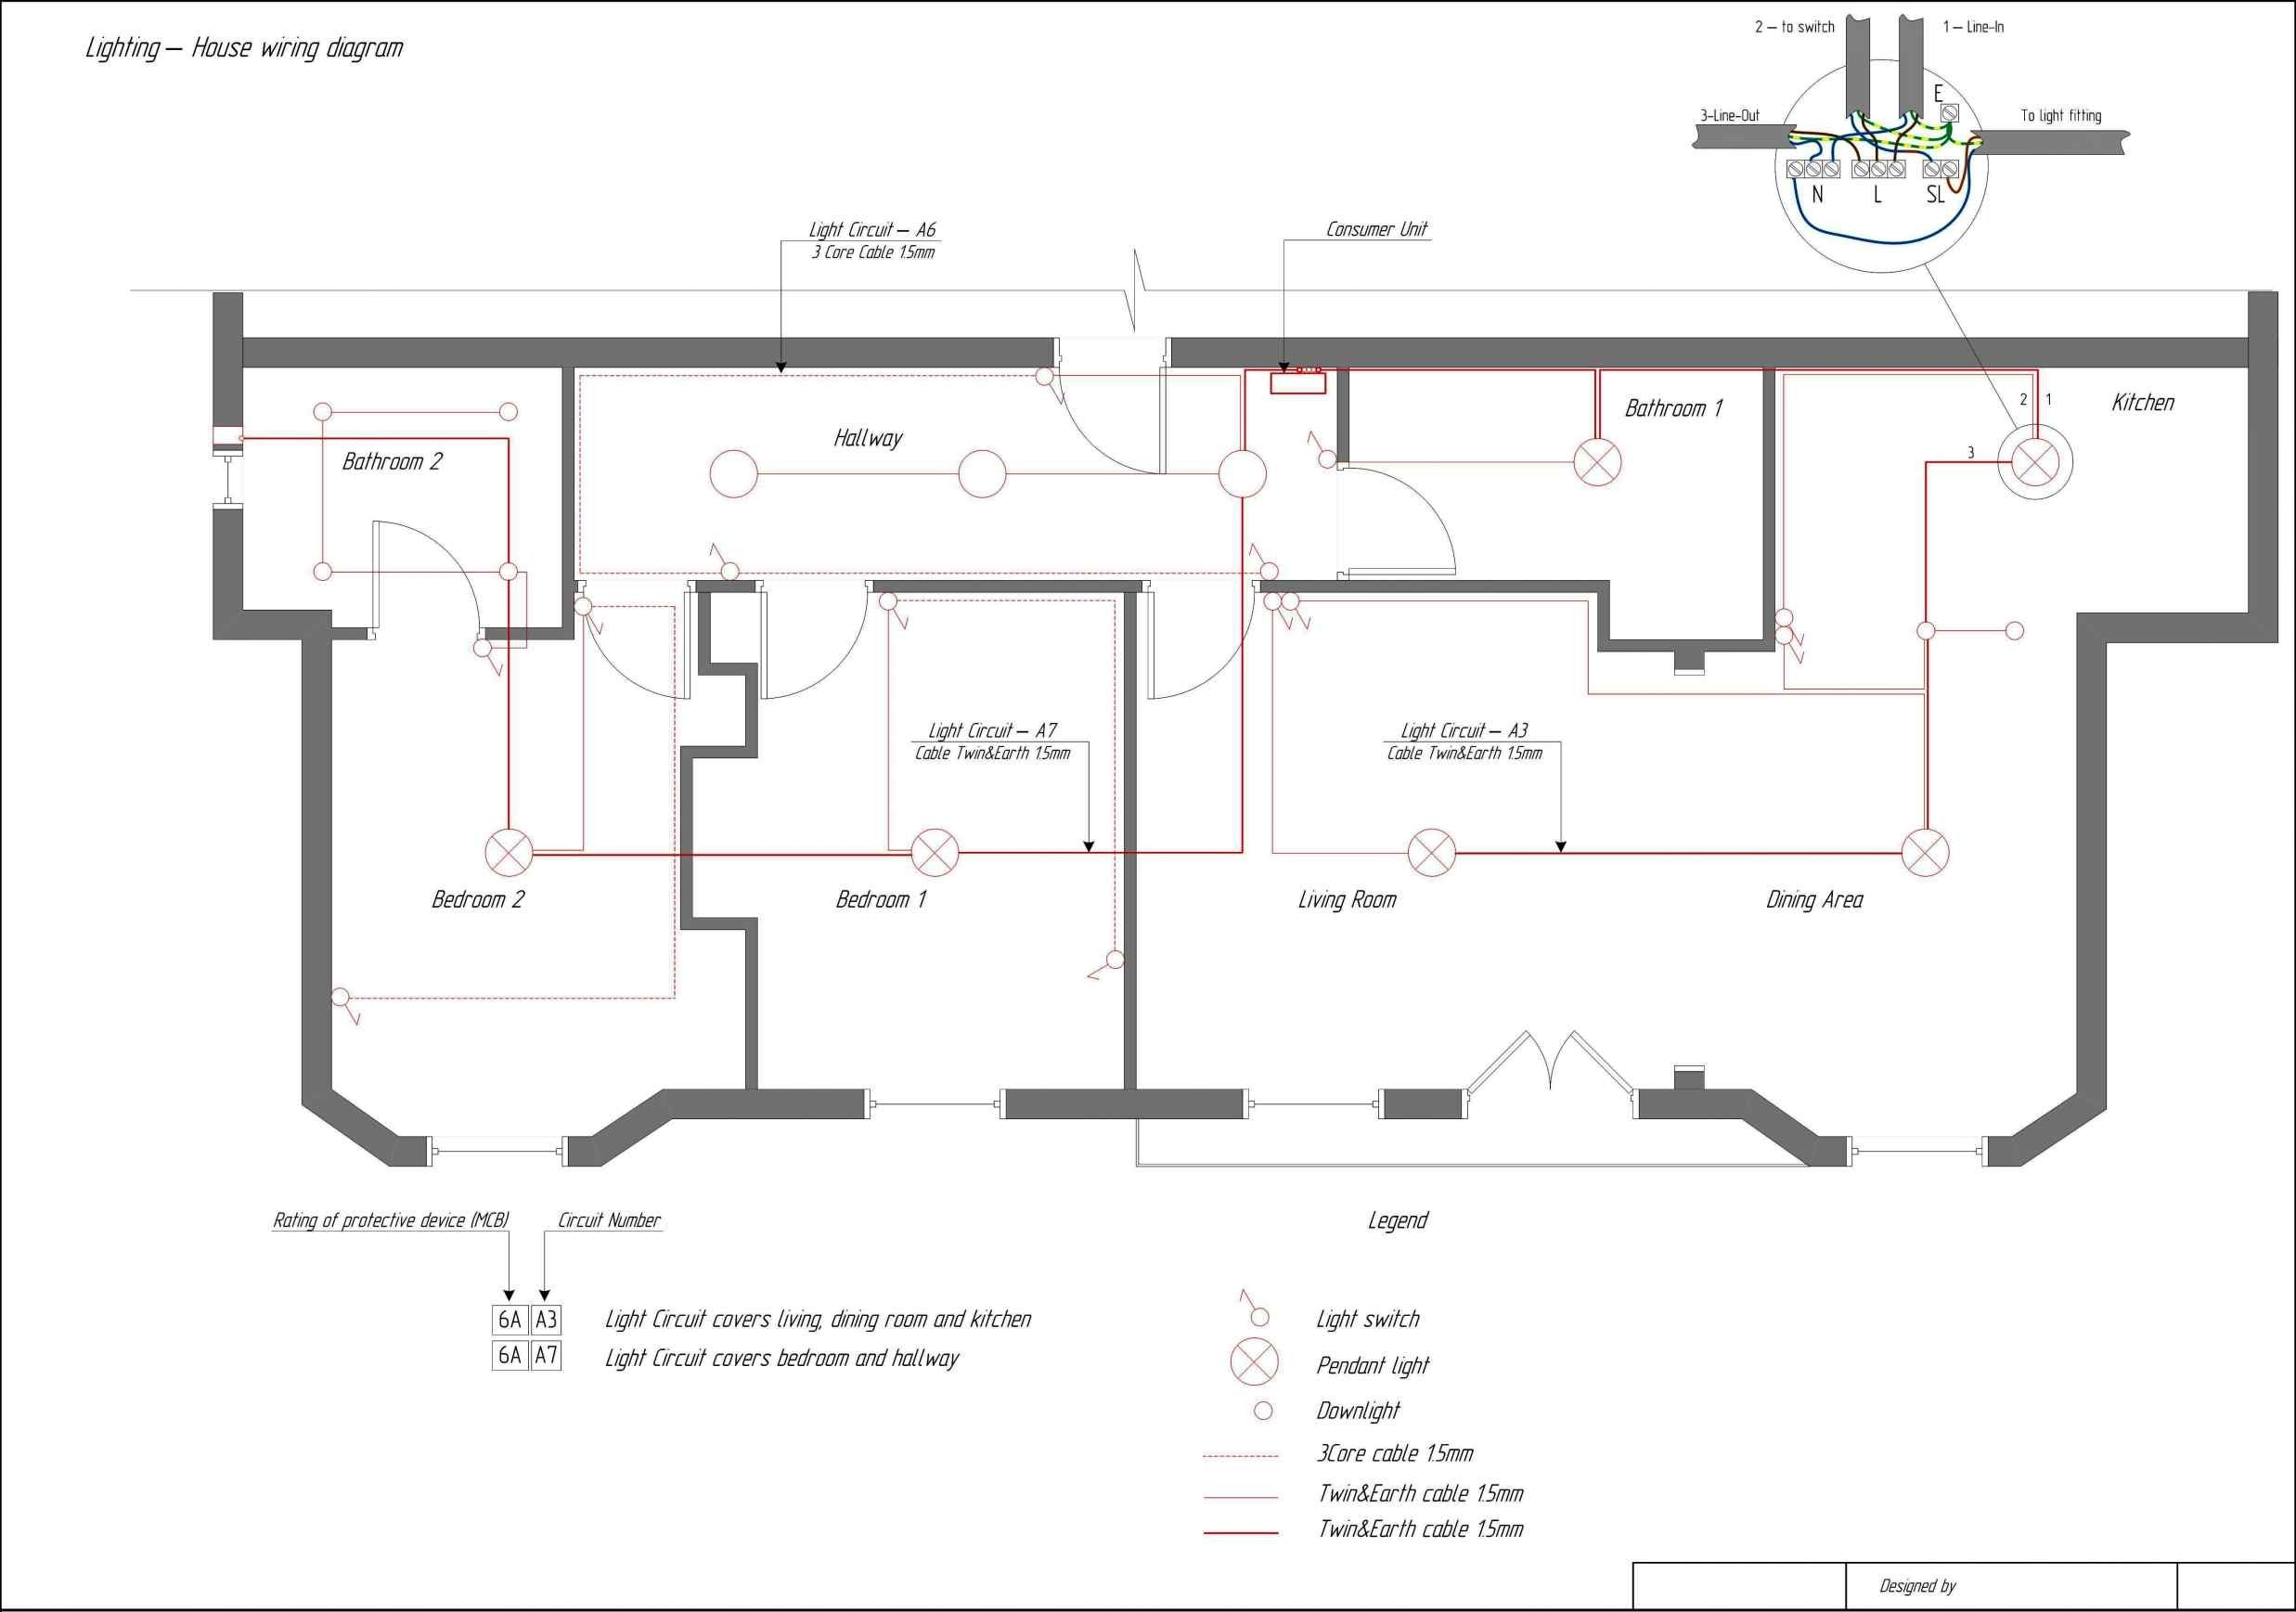 1974 Mobile Home Electrical Wiring Diagram | Wiring Diagram - Trailer House Wiring Diagram